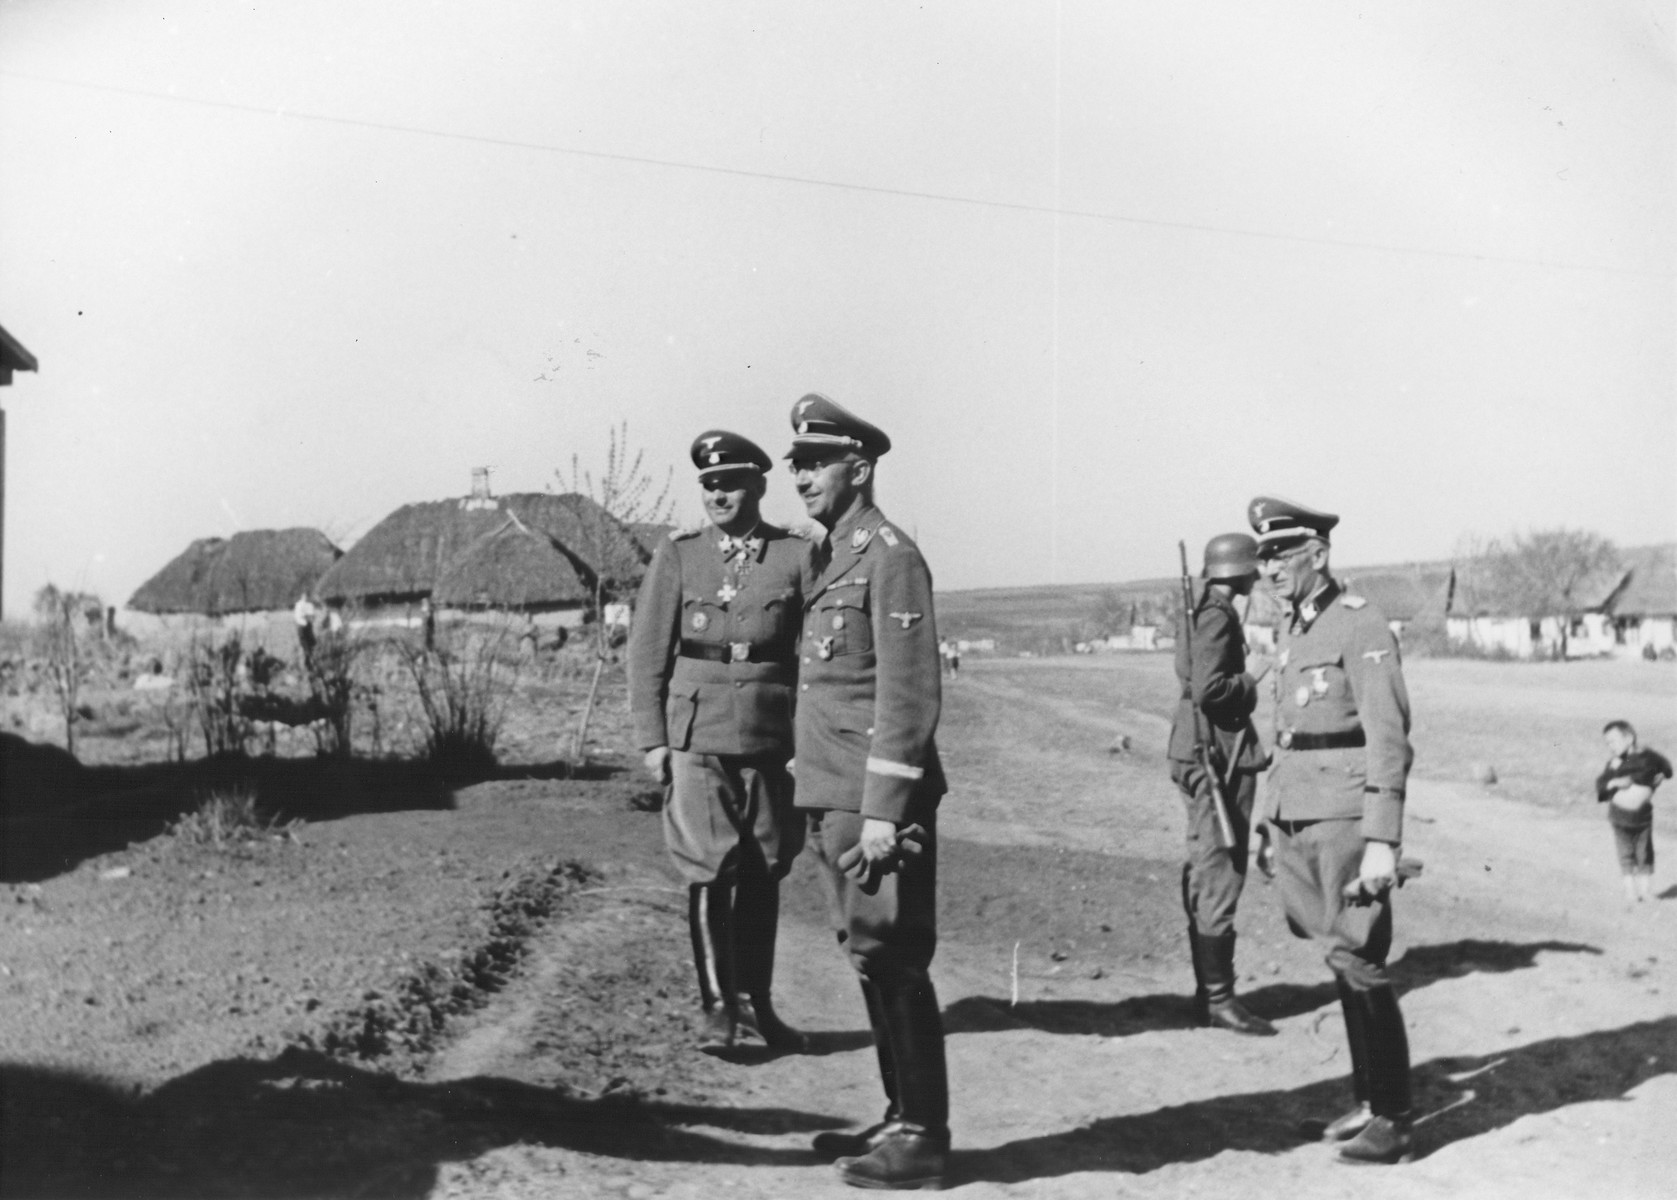 Reichsfuehrer-SS Heinrich Himmler stands outside with leaders of the Waffen-SS Armored Division Wiking during an official visit.  SS-Obergruppenfuehrer and General Herbert O. Gille (commander of the Wiking Division from May 1943 until August 1944) is pictured at the right wearing glasses.